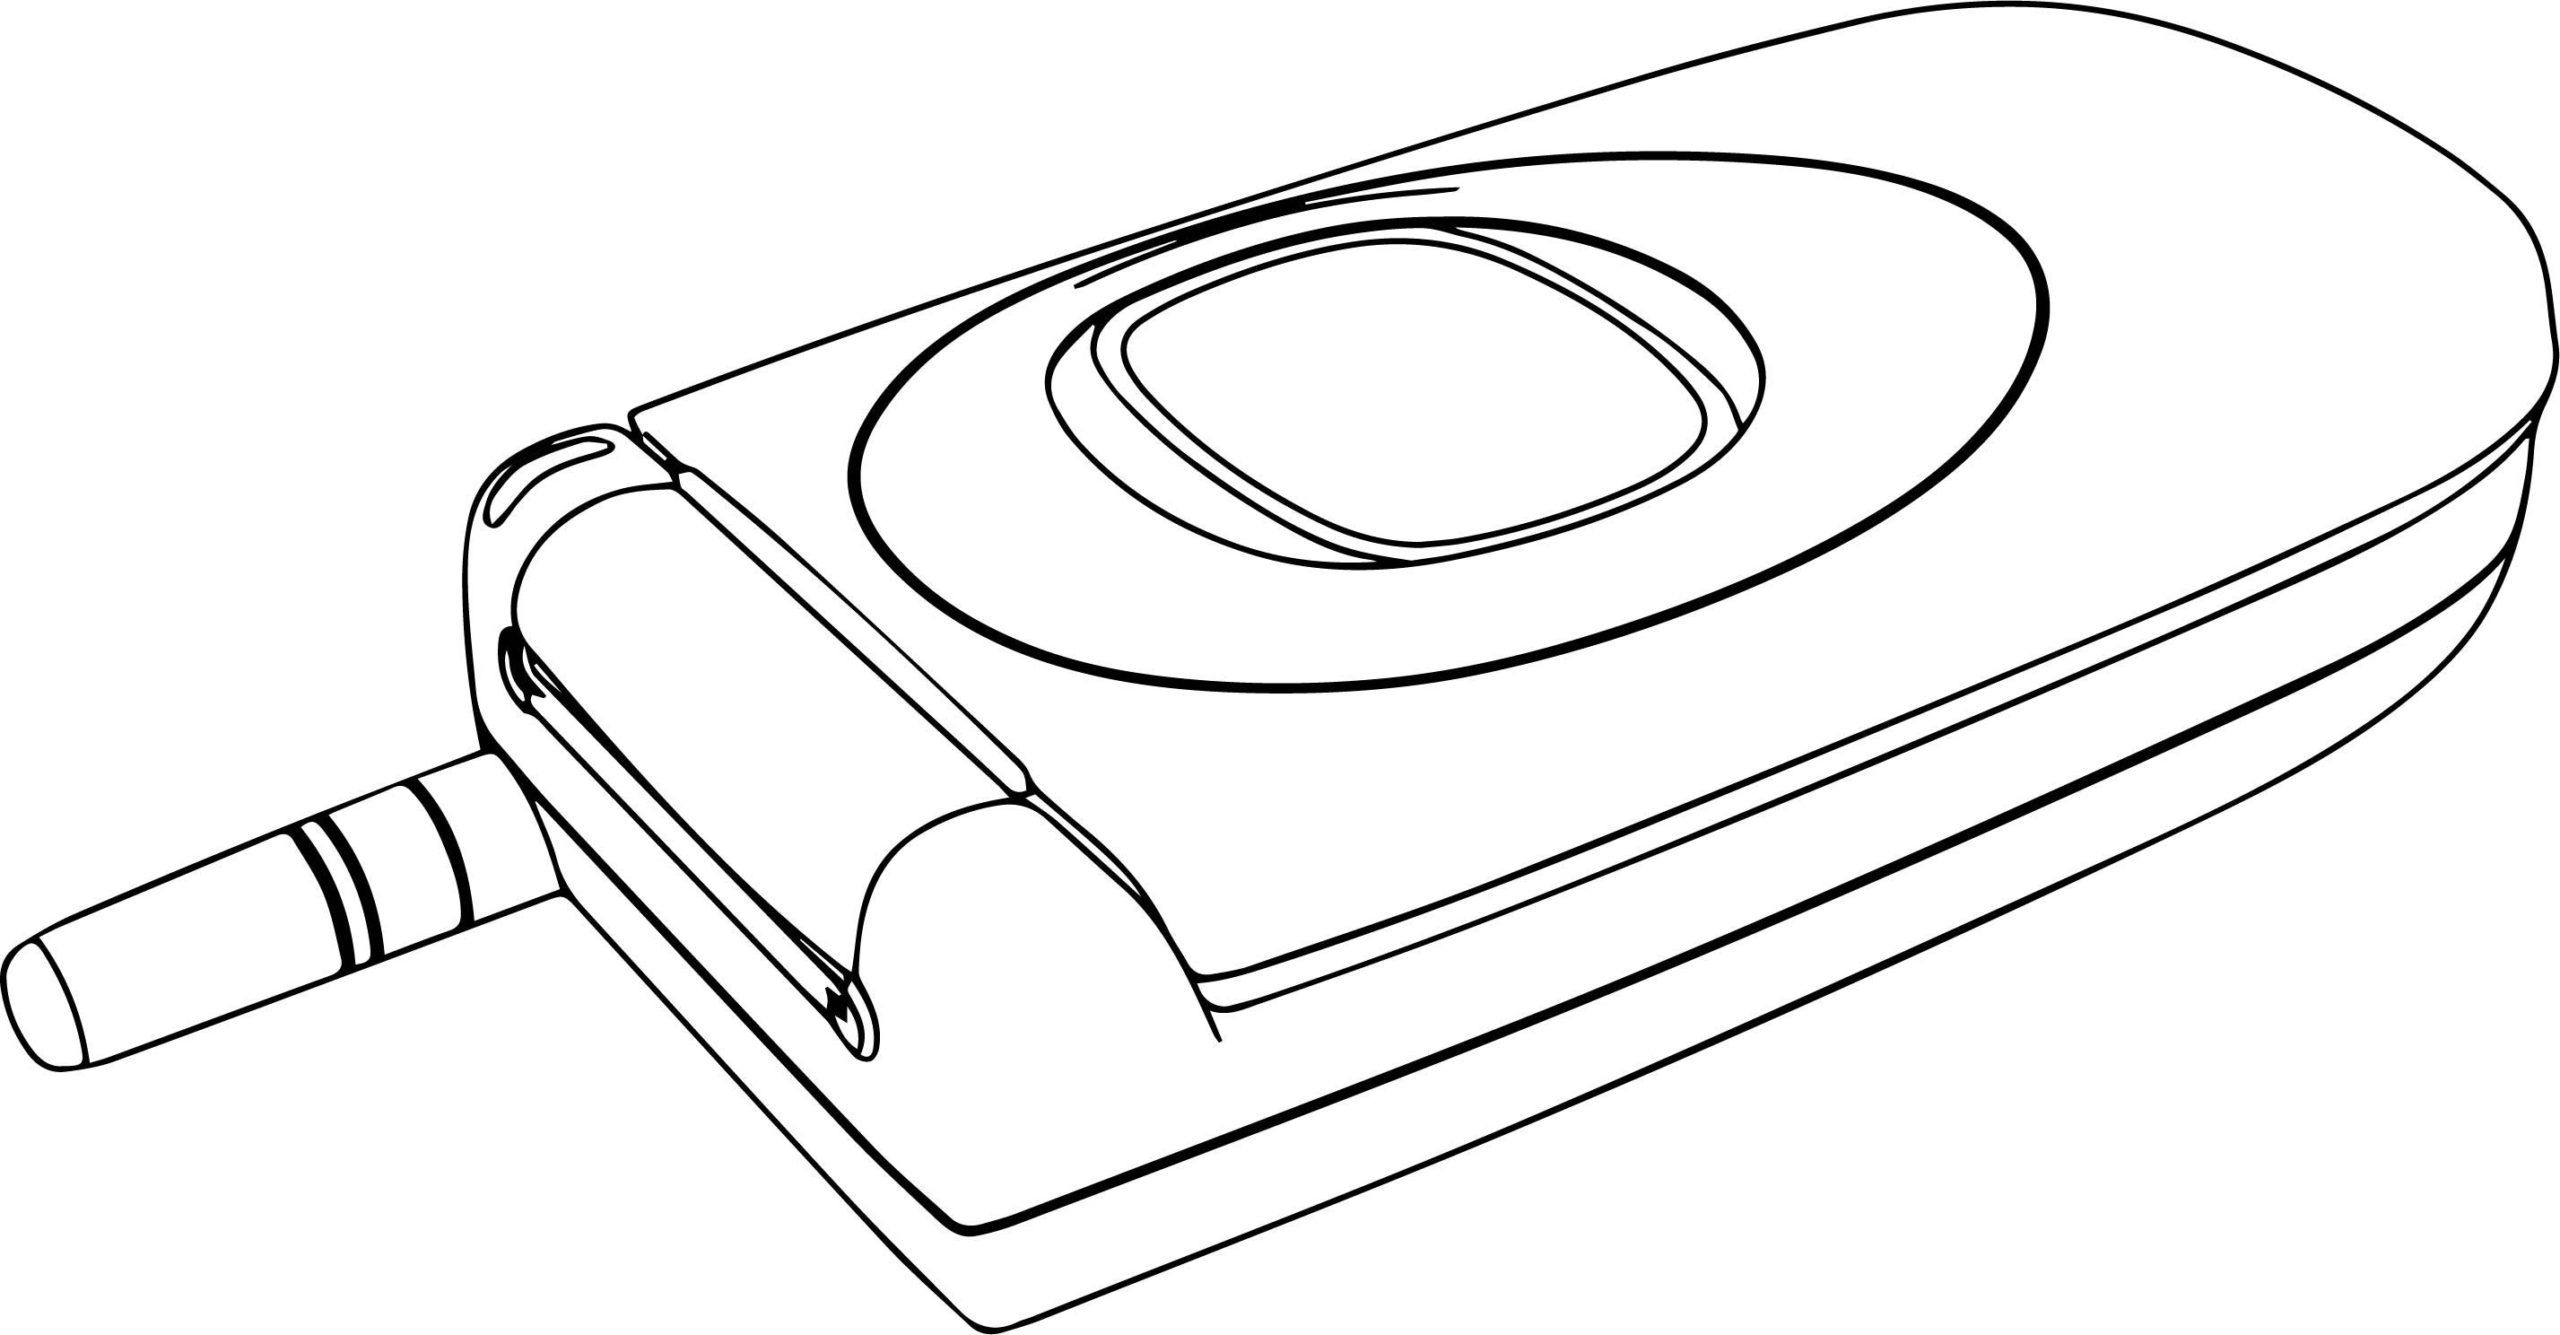 51 Coloring Page Of A Cell Phone